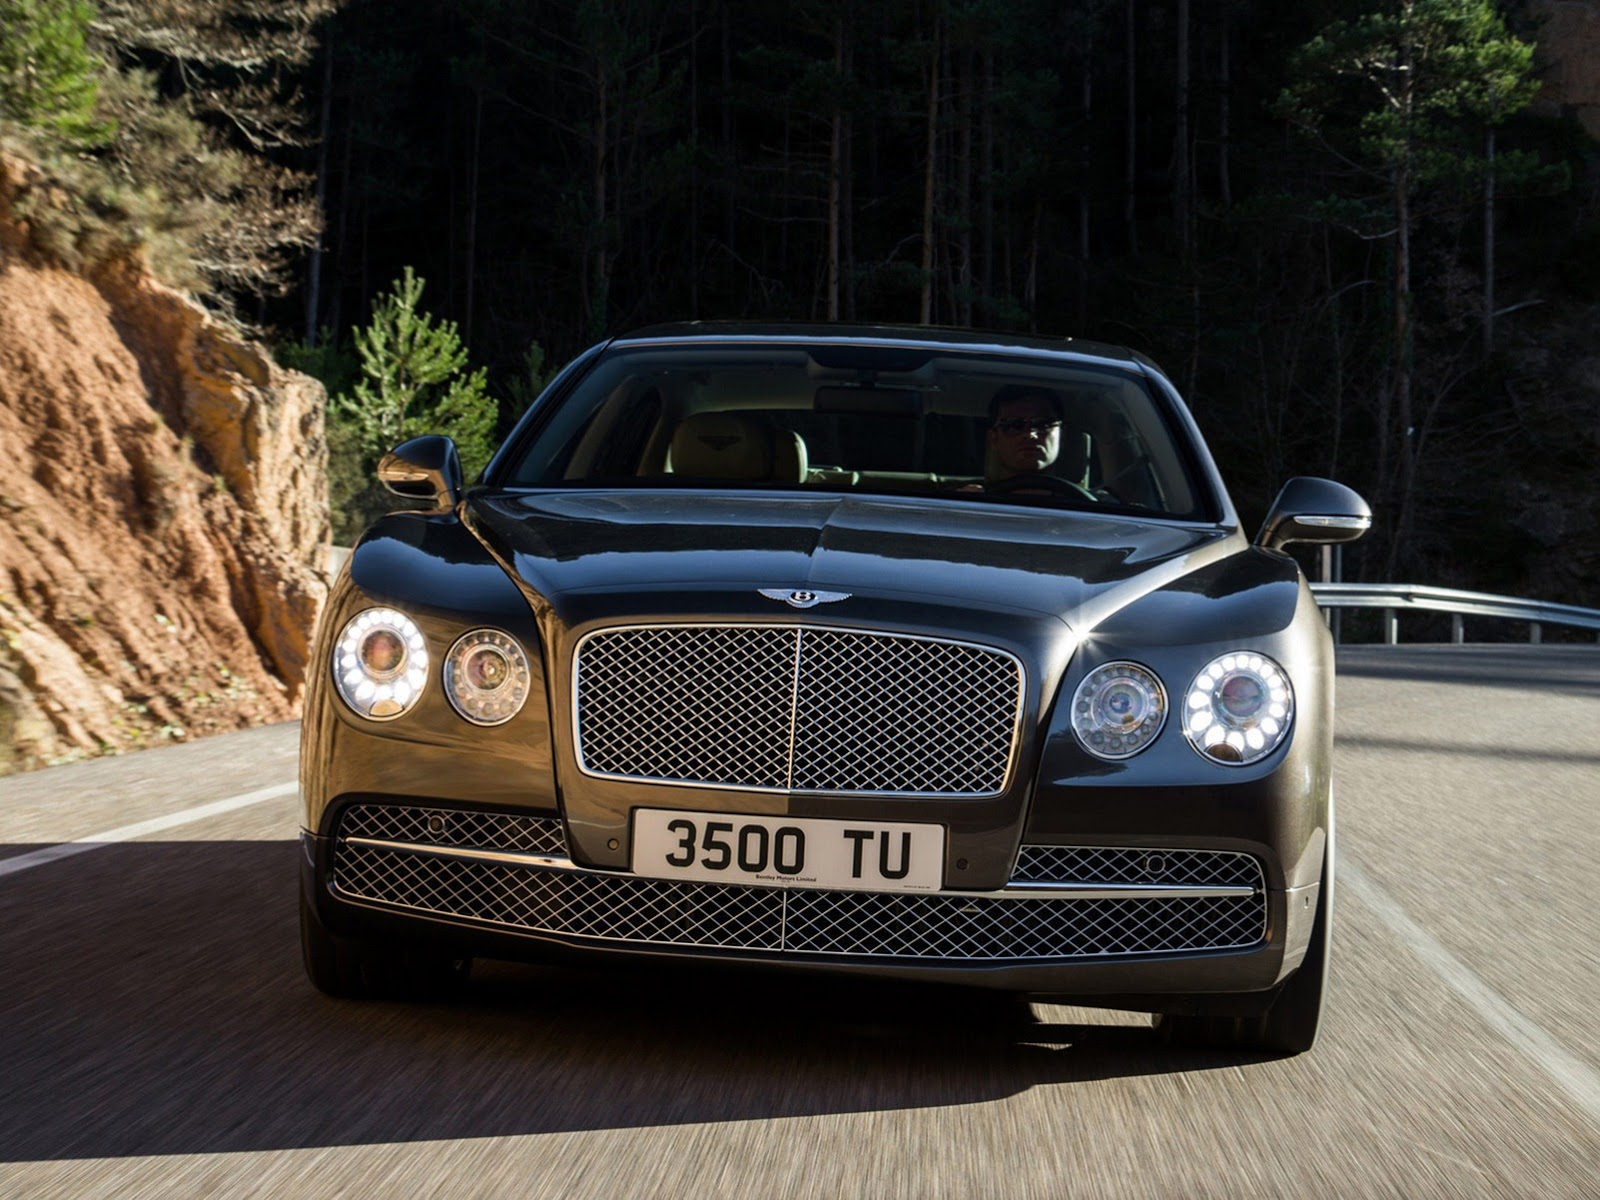 http://www.diseno-art.com/news_content/wp-content/uploads/2013/02/2014-Bentley-Continental-Flying-Spur-4.jpg